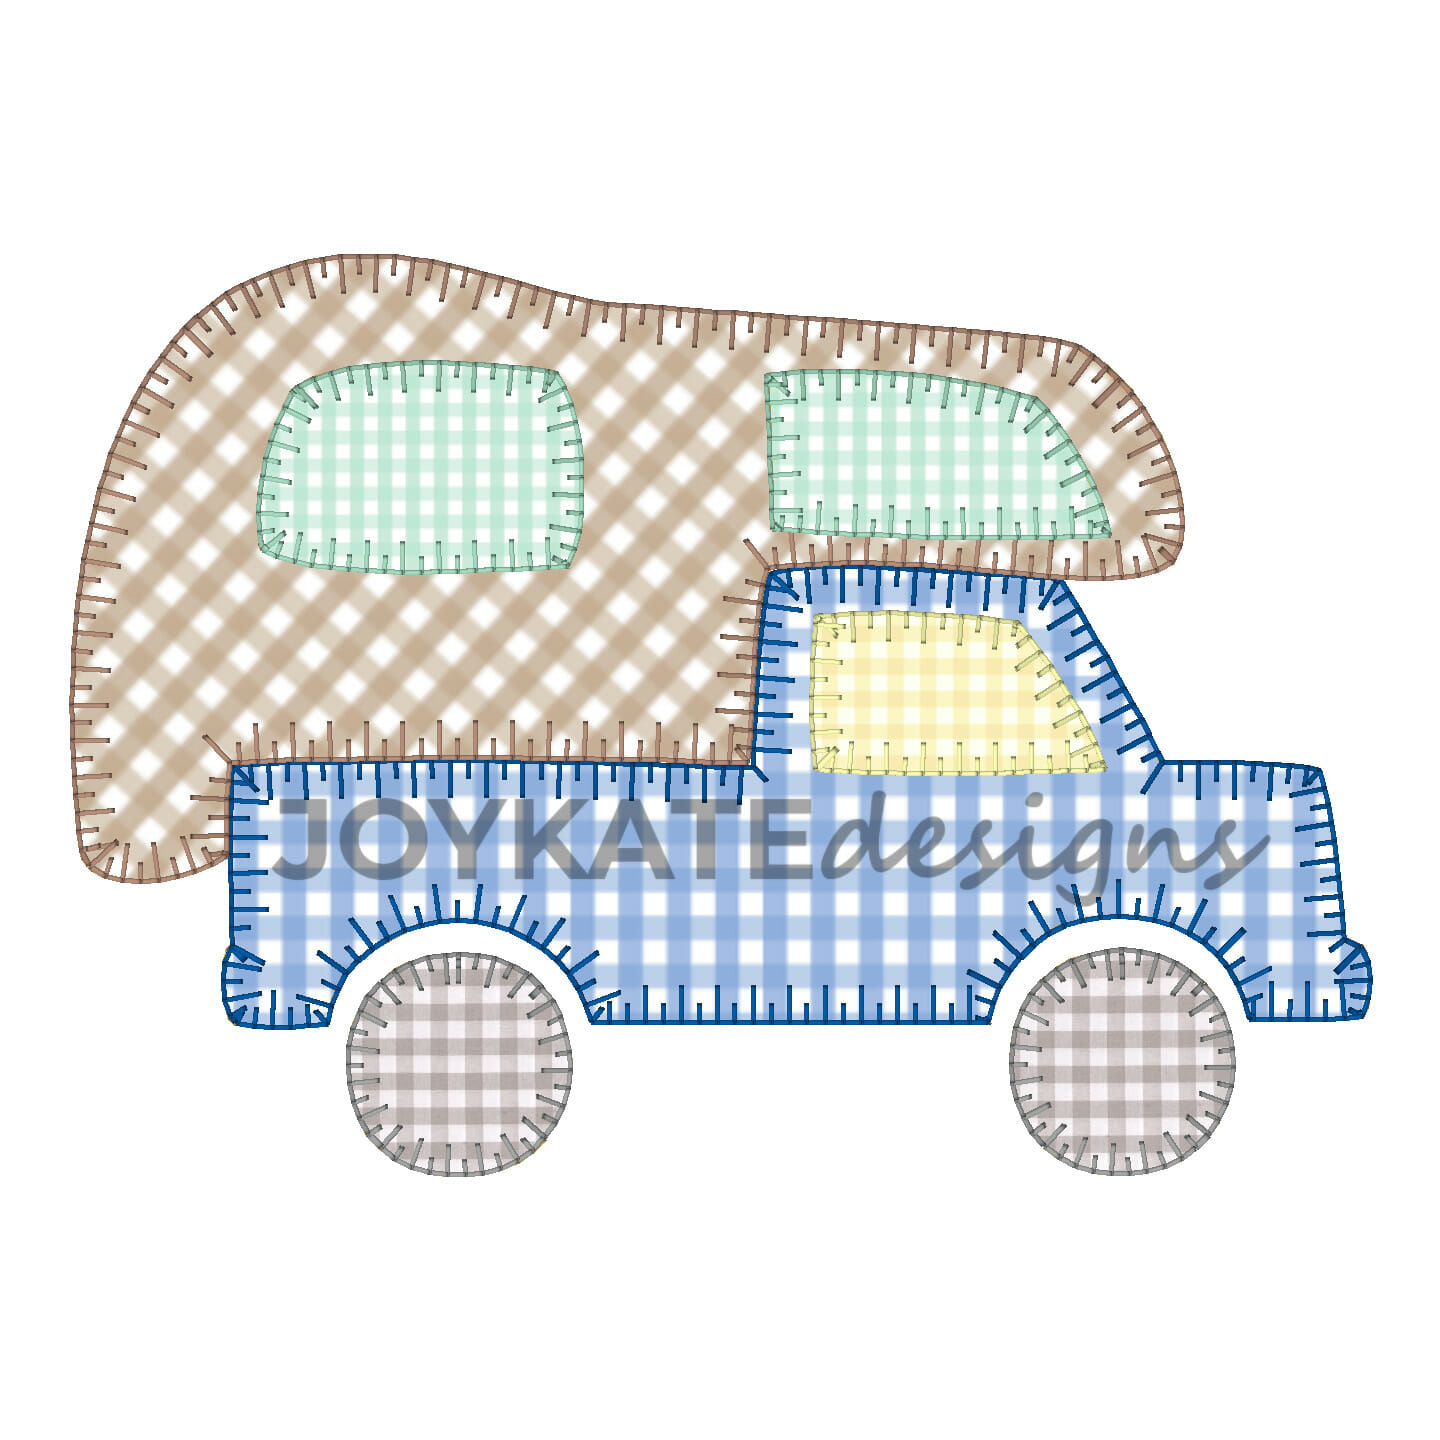 Truck Camper Applique Embroidery Design Joy Kate Designs